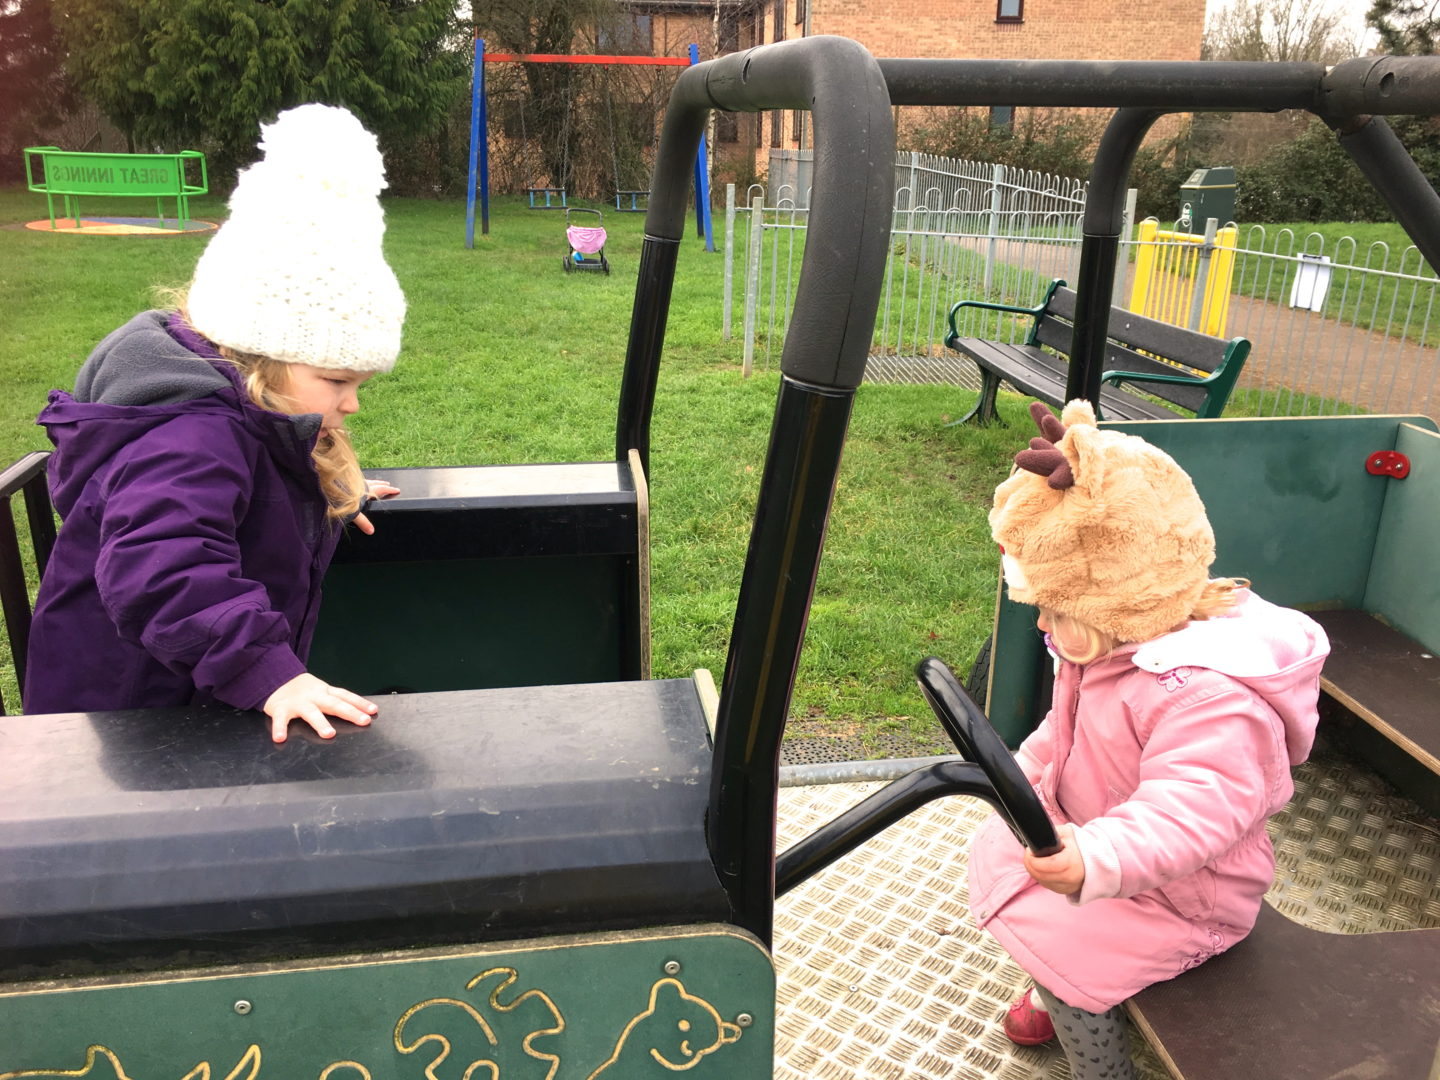 Two toddler sisters playing on a climbing frame car in a playground